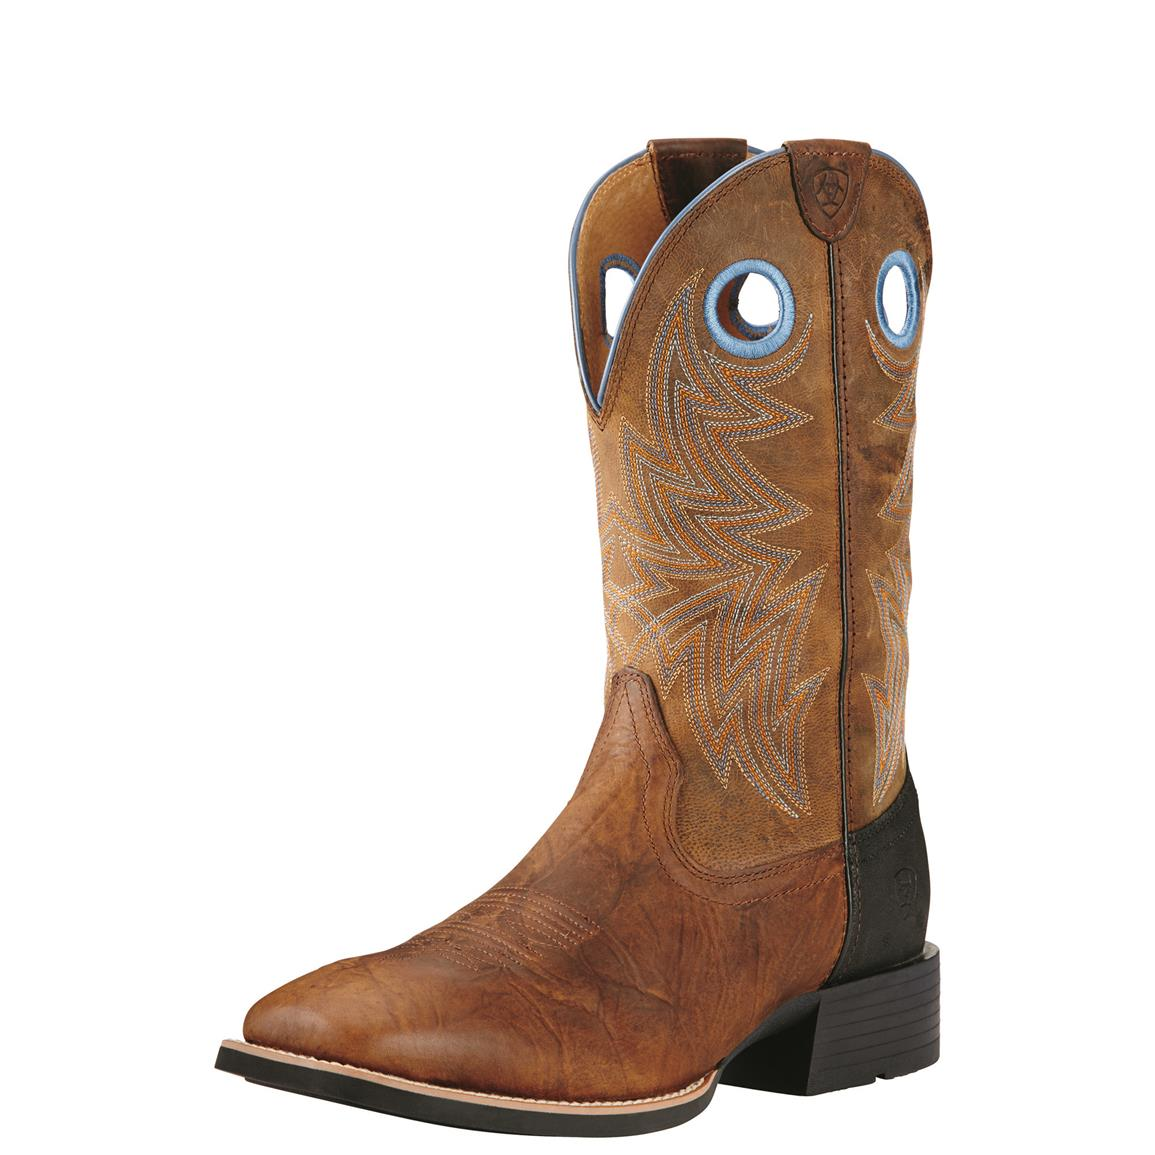 Ariat Men's Heritage Cowhorse Western Boots, Brown/Woodsmoke